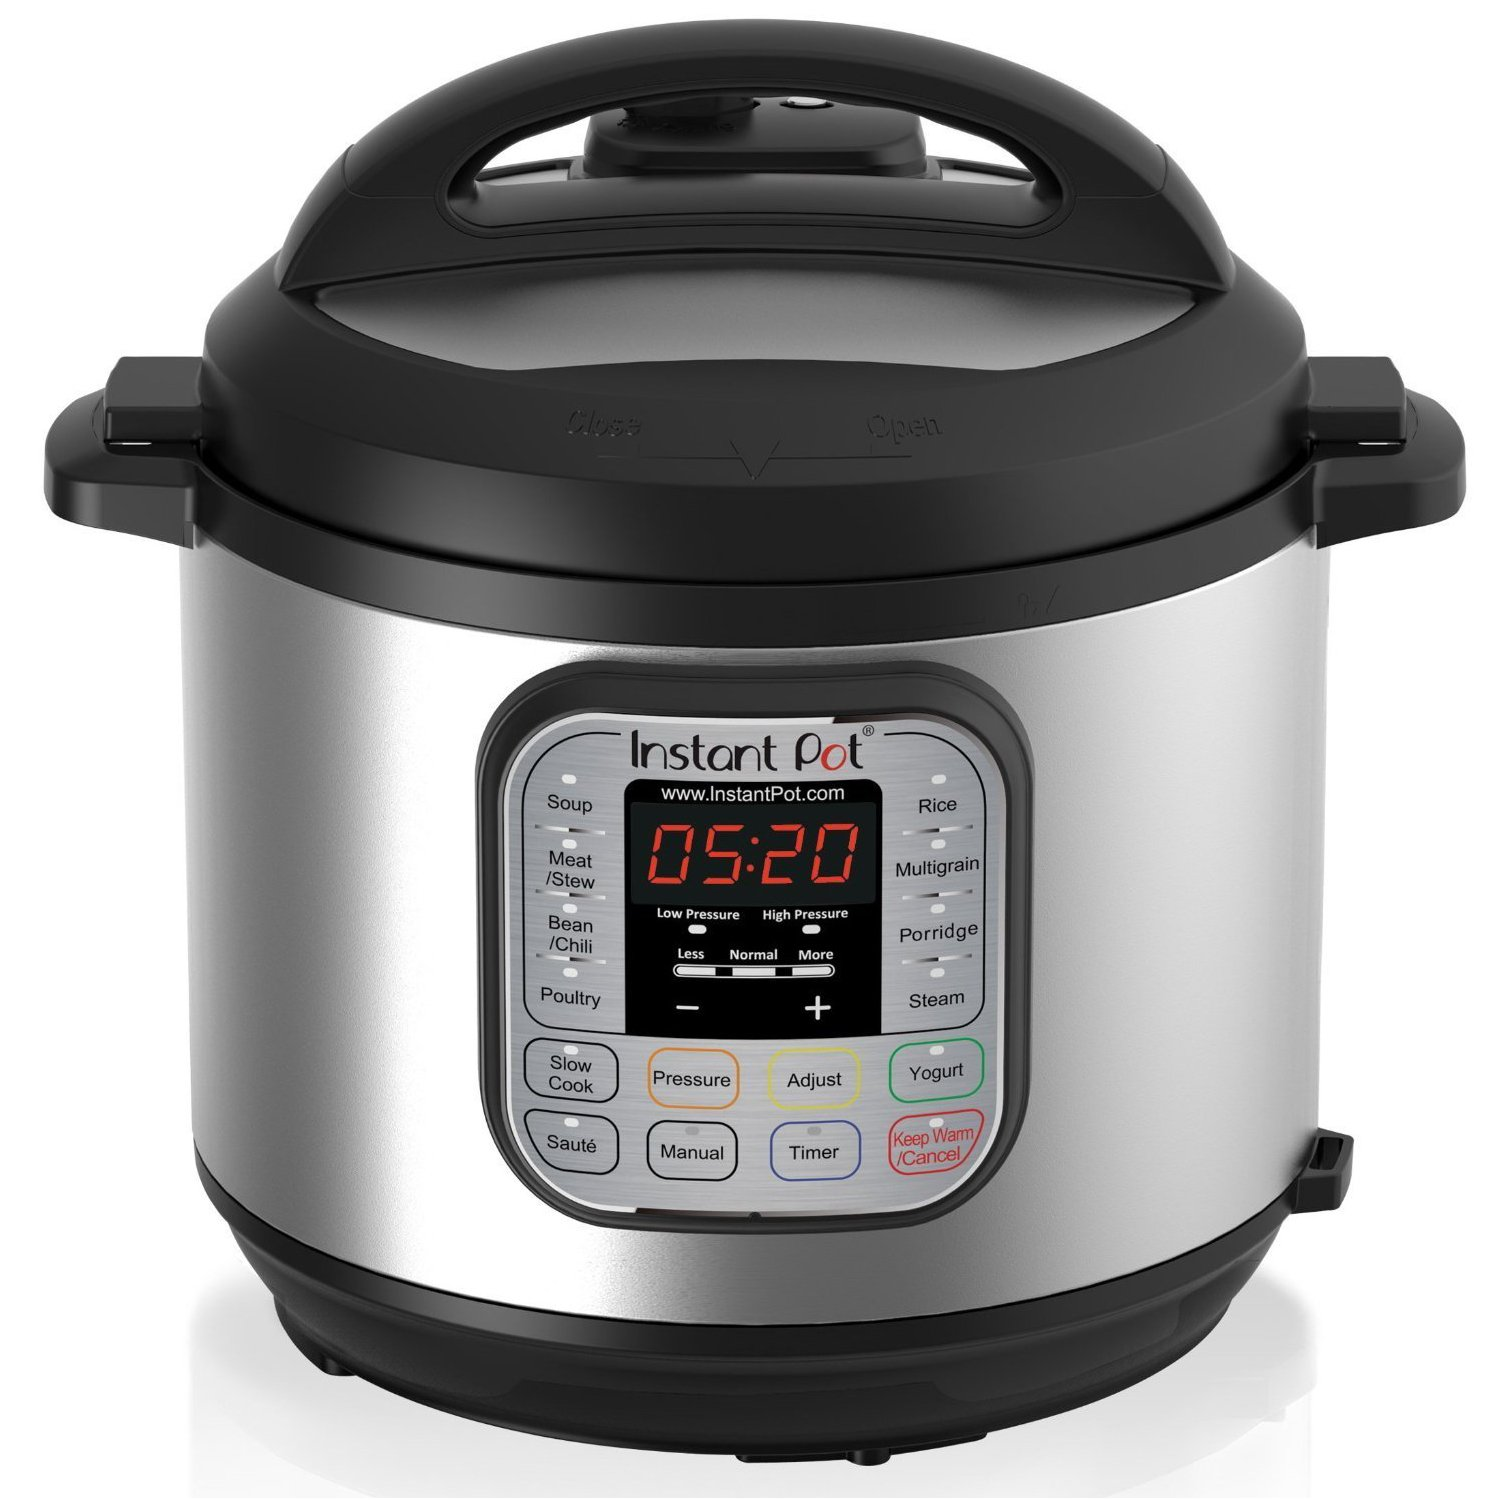 Instant Pot 7-in-1 Multi-Use Programmable Pressure Cooker, 6 Qt